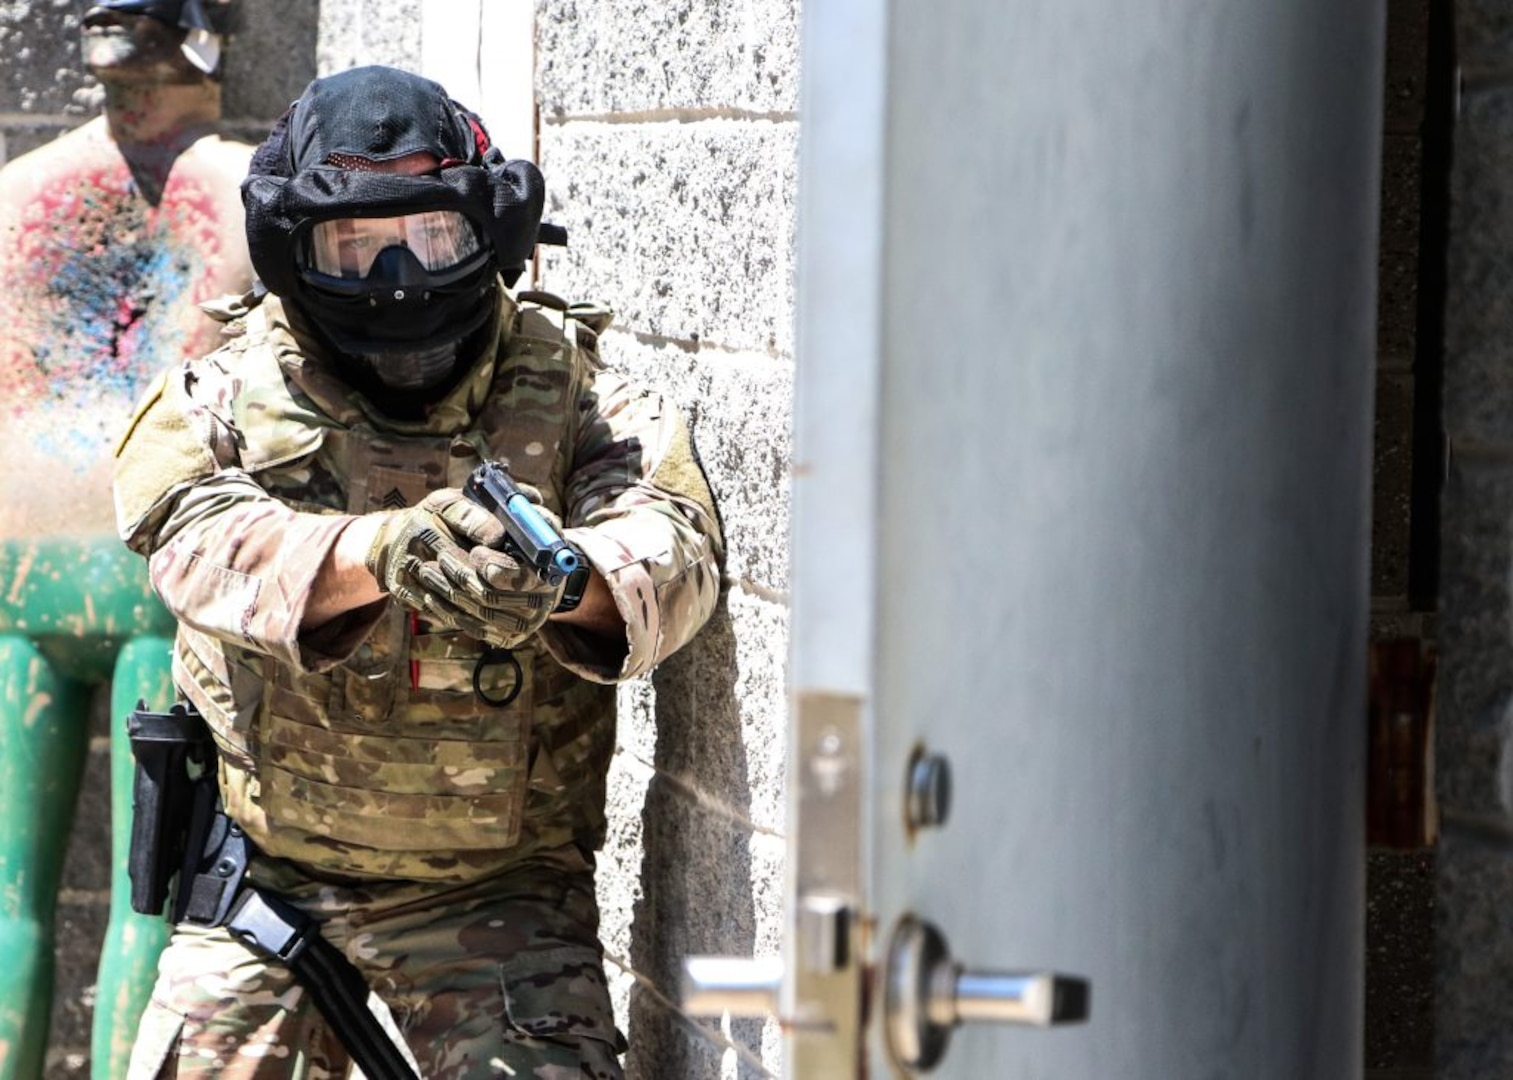 229th MPs conduct active shooter training exercise during AT